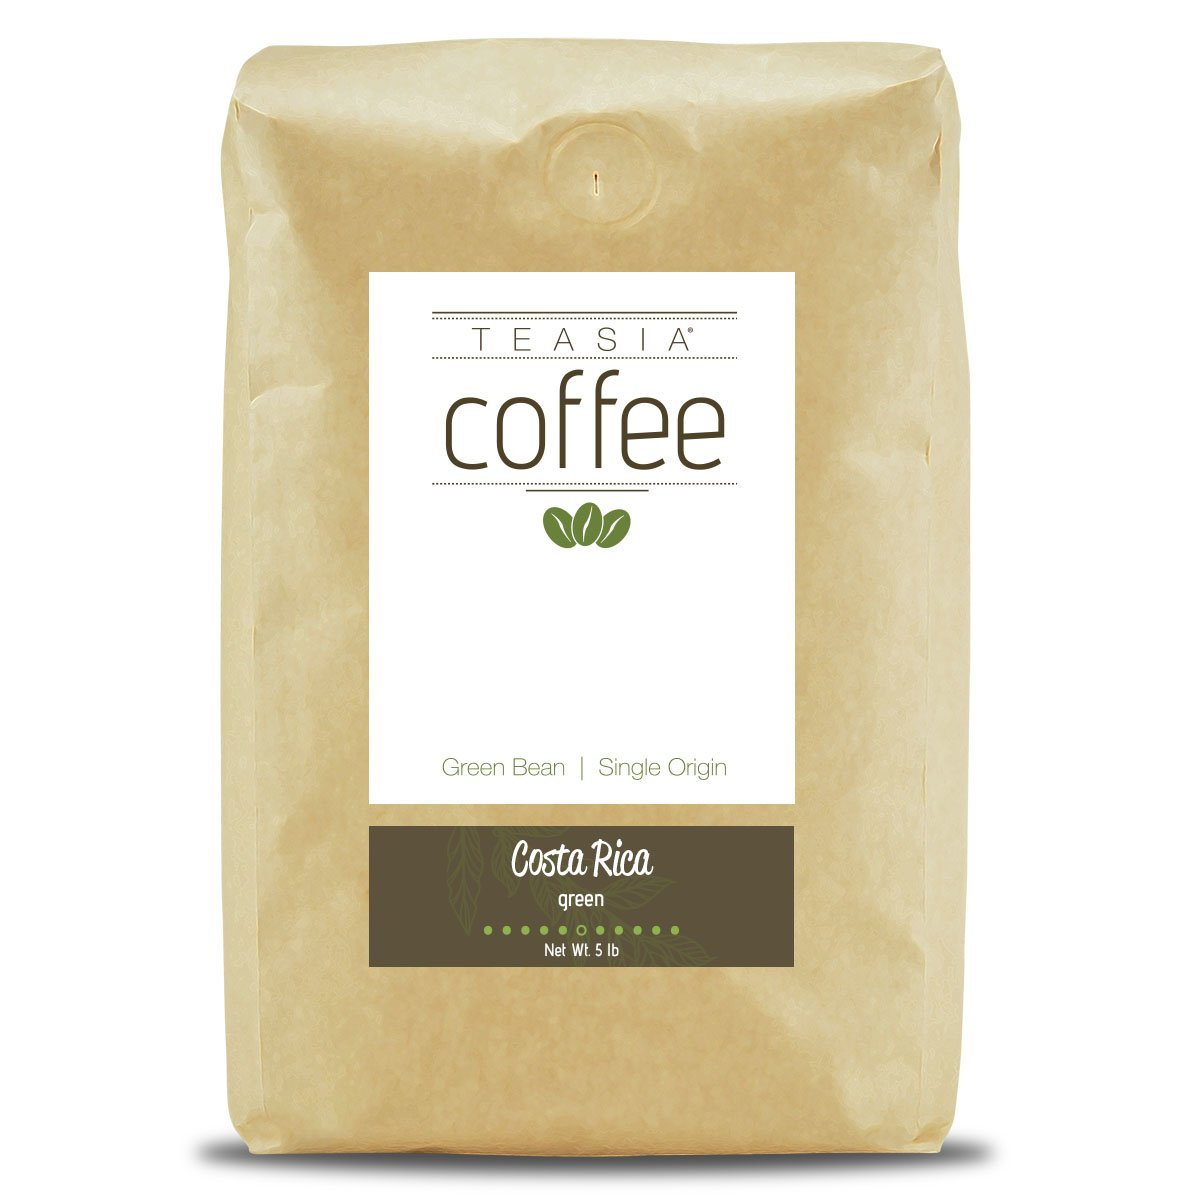 Teasia Coffee, Costa Rica, Single Origin, Green Unroasted Whole Coffee Beans, 5-Pound Bag